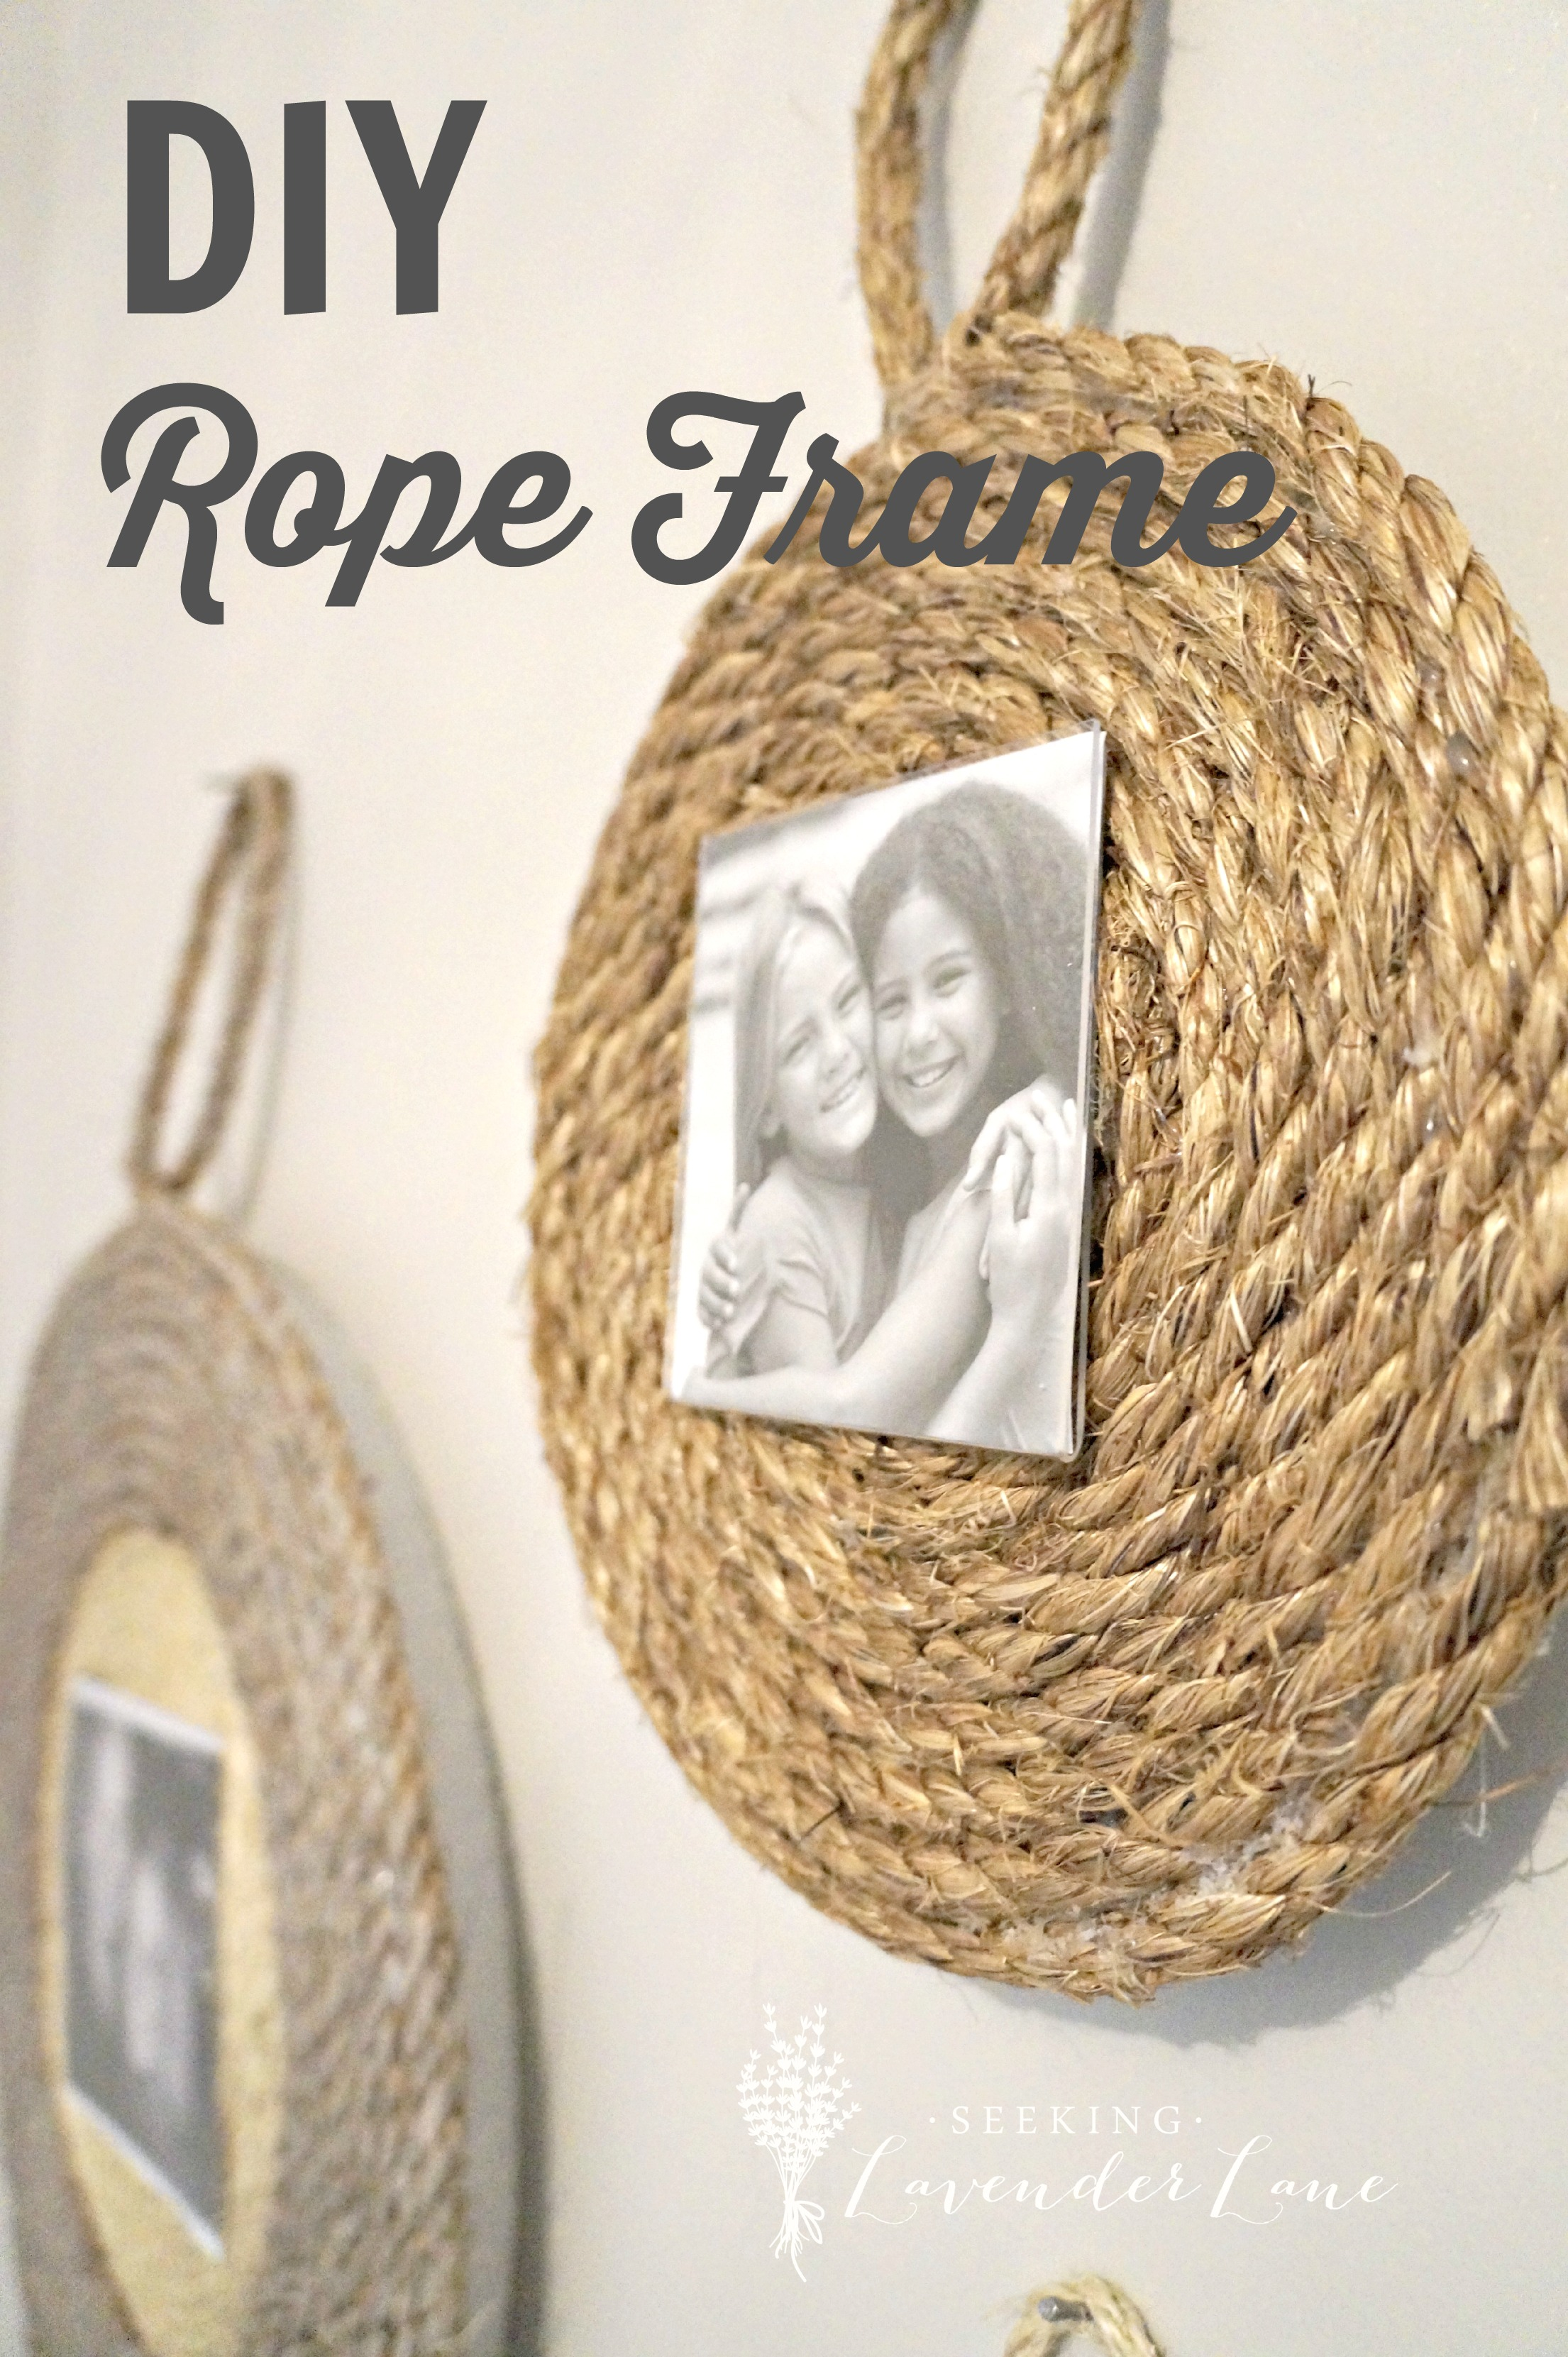 diy rope frame with labeljpg